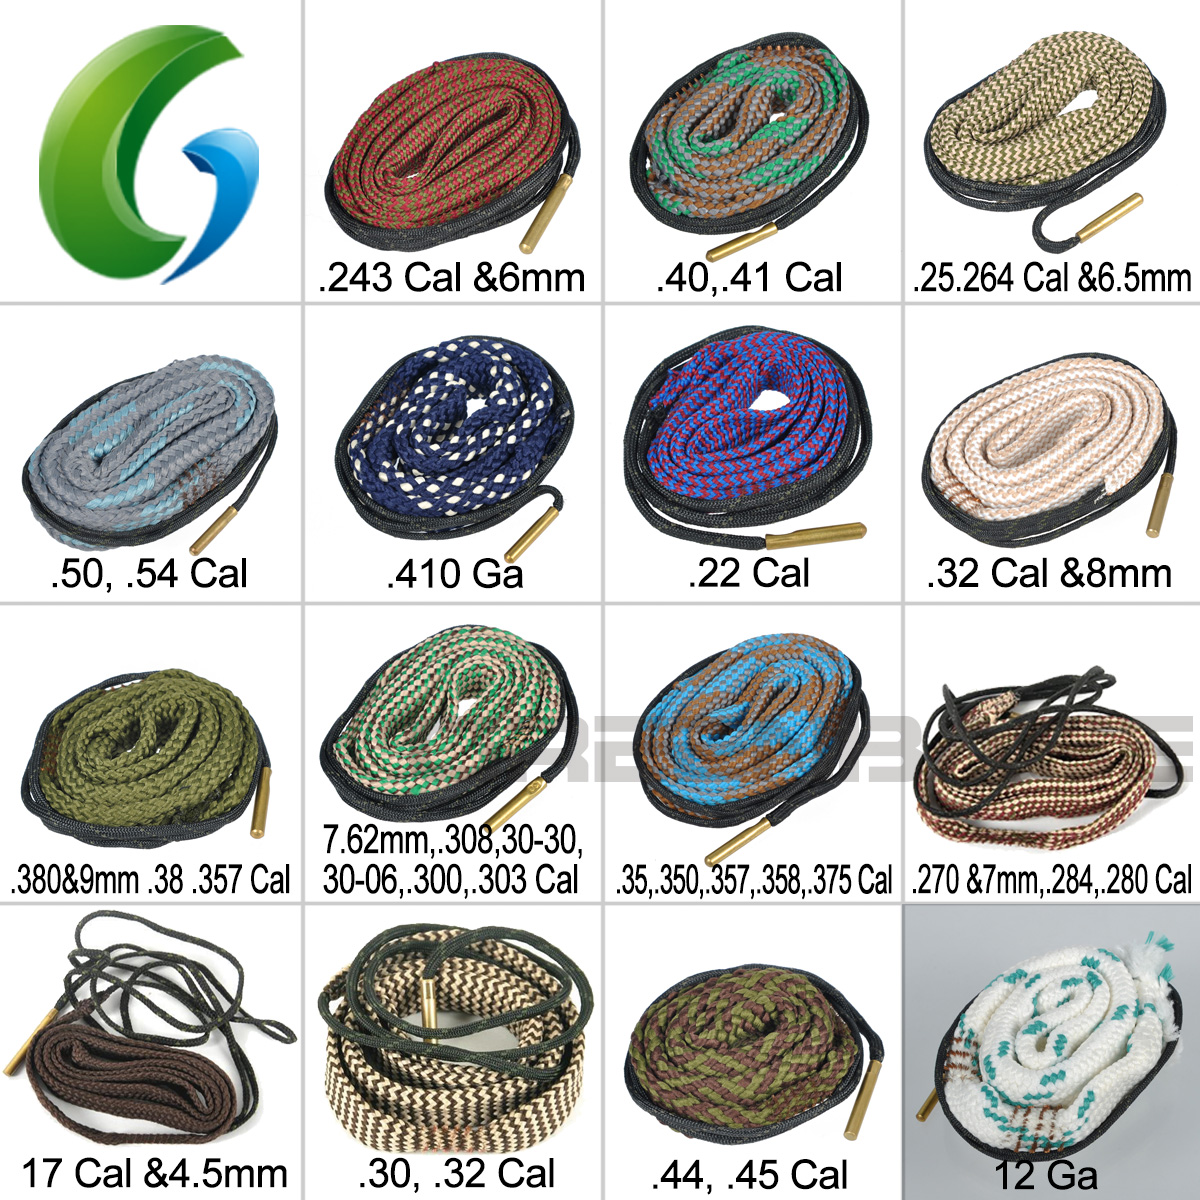 Hunting Hunting Gun Bore Cleaner Snake.22 Cal.223 Cal.38 Cal& 5.56mm,7.62mm,12ga Rifle Cleaning Kit Tool Rifle Barrel Calibre Snake Rope Ideal Gift For All Occasions Sports & Entertainment